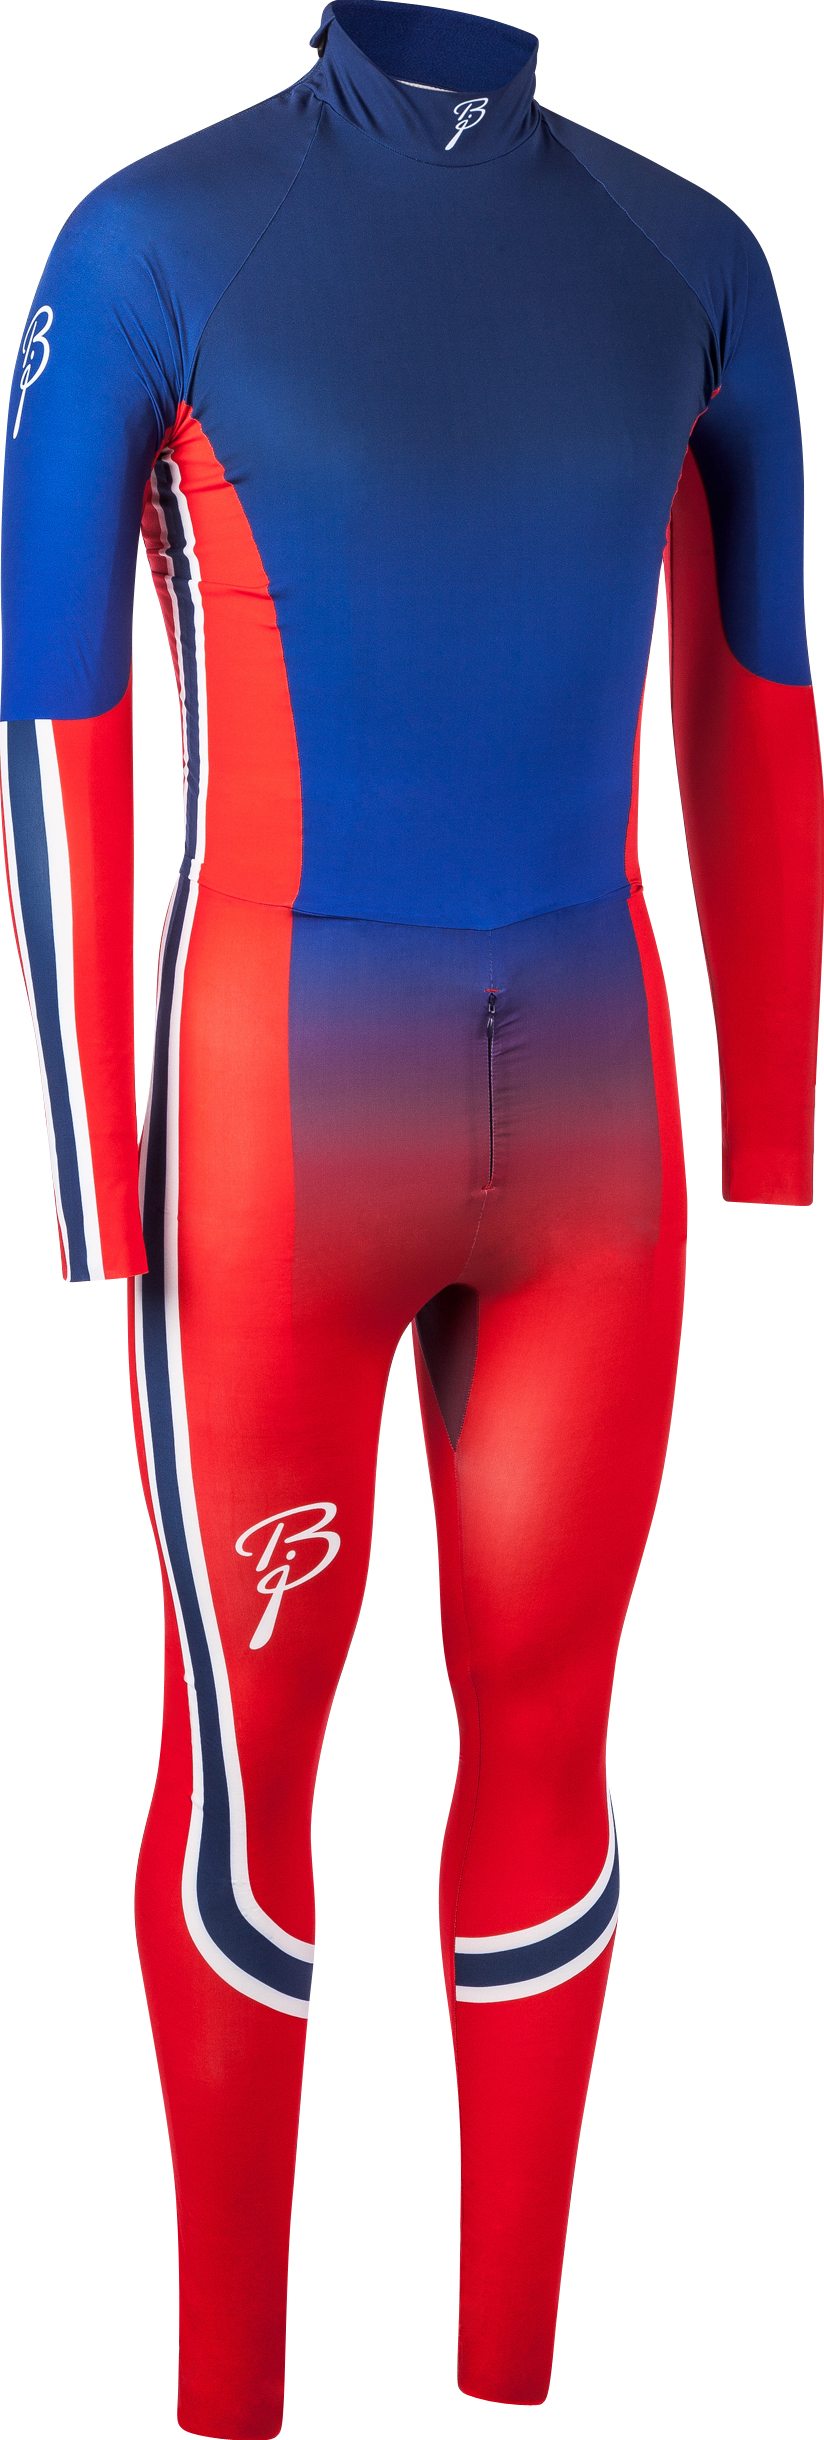 náhled BJORN DAEHLIE NATIONS RACE SUIT 2 pcs.